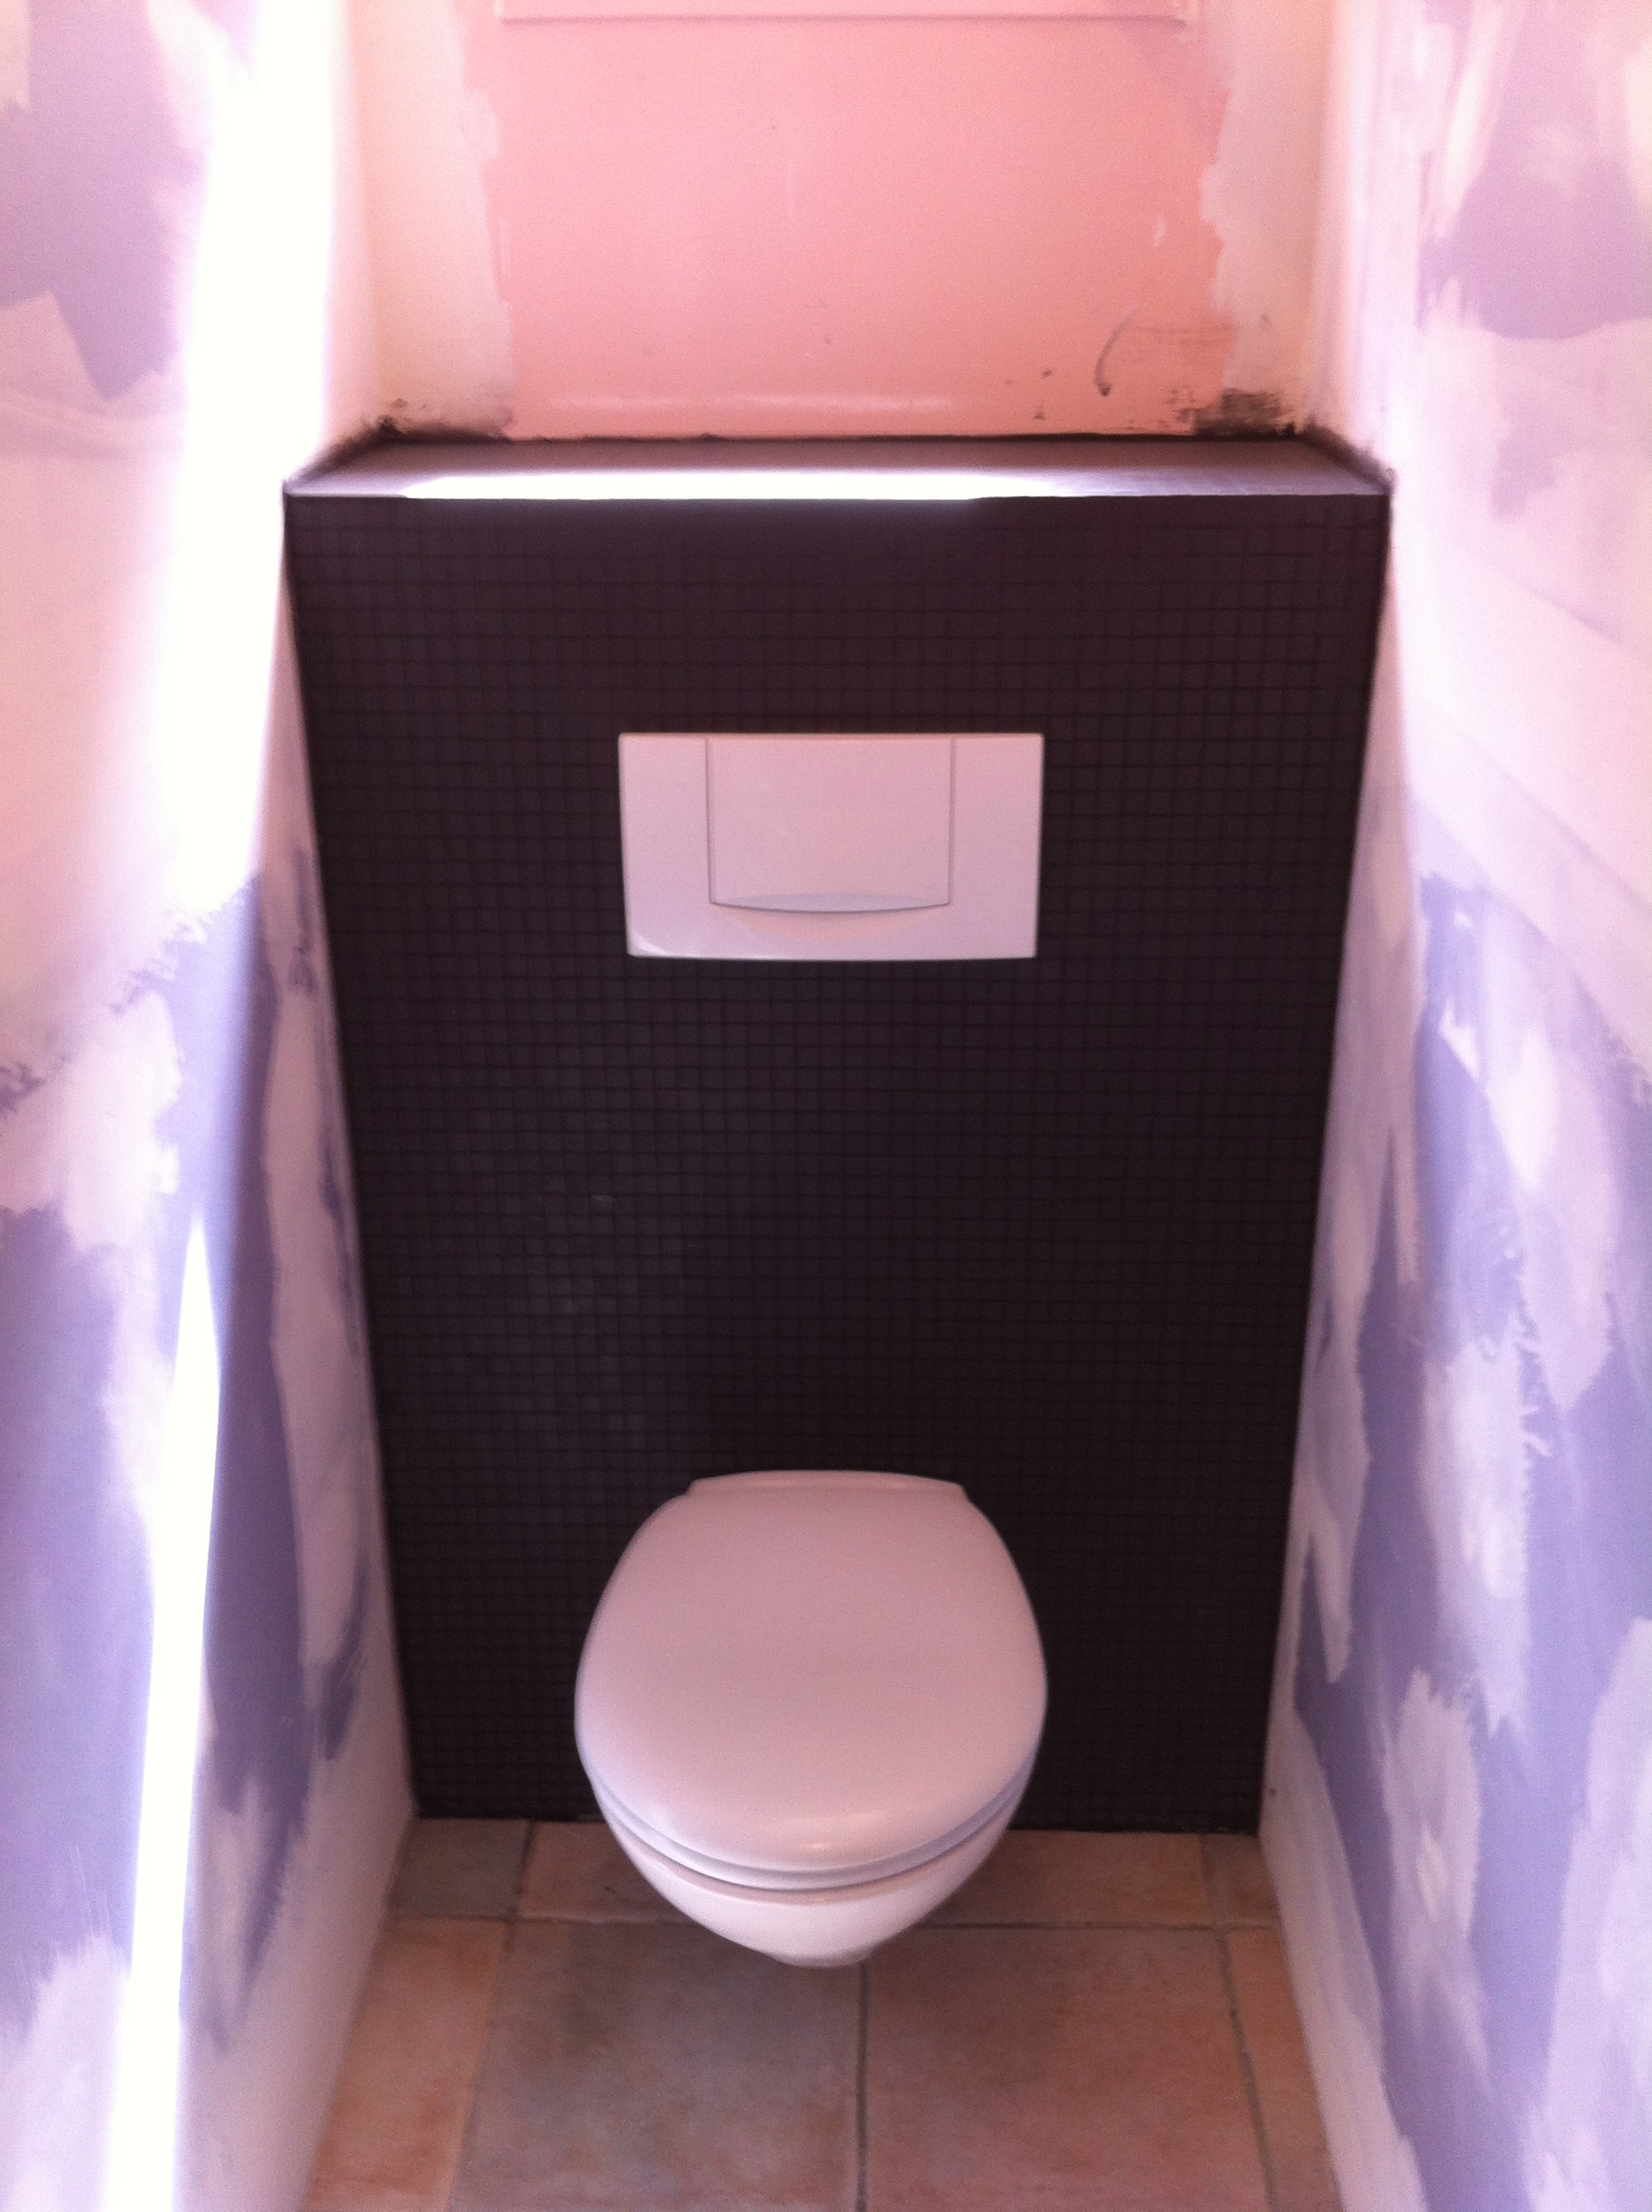 Installer wc suspendu dream house - Peut on poser du carrelage sur un autre carrelage ...